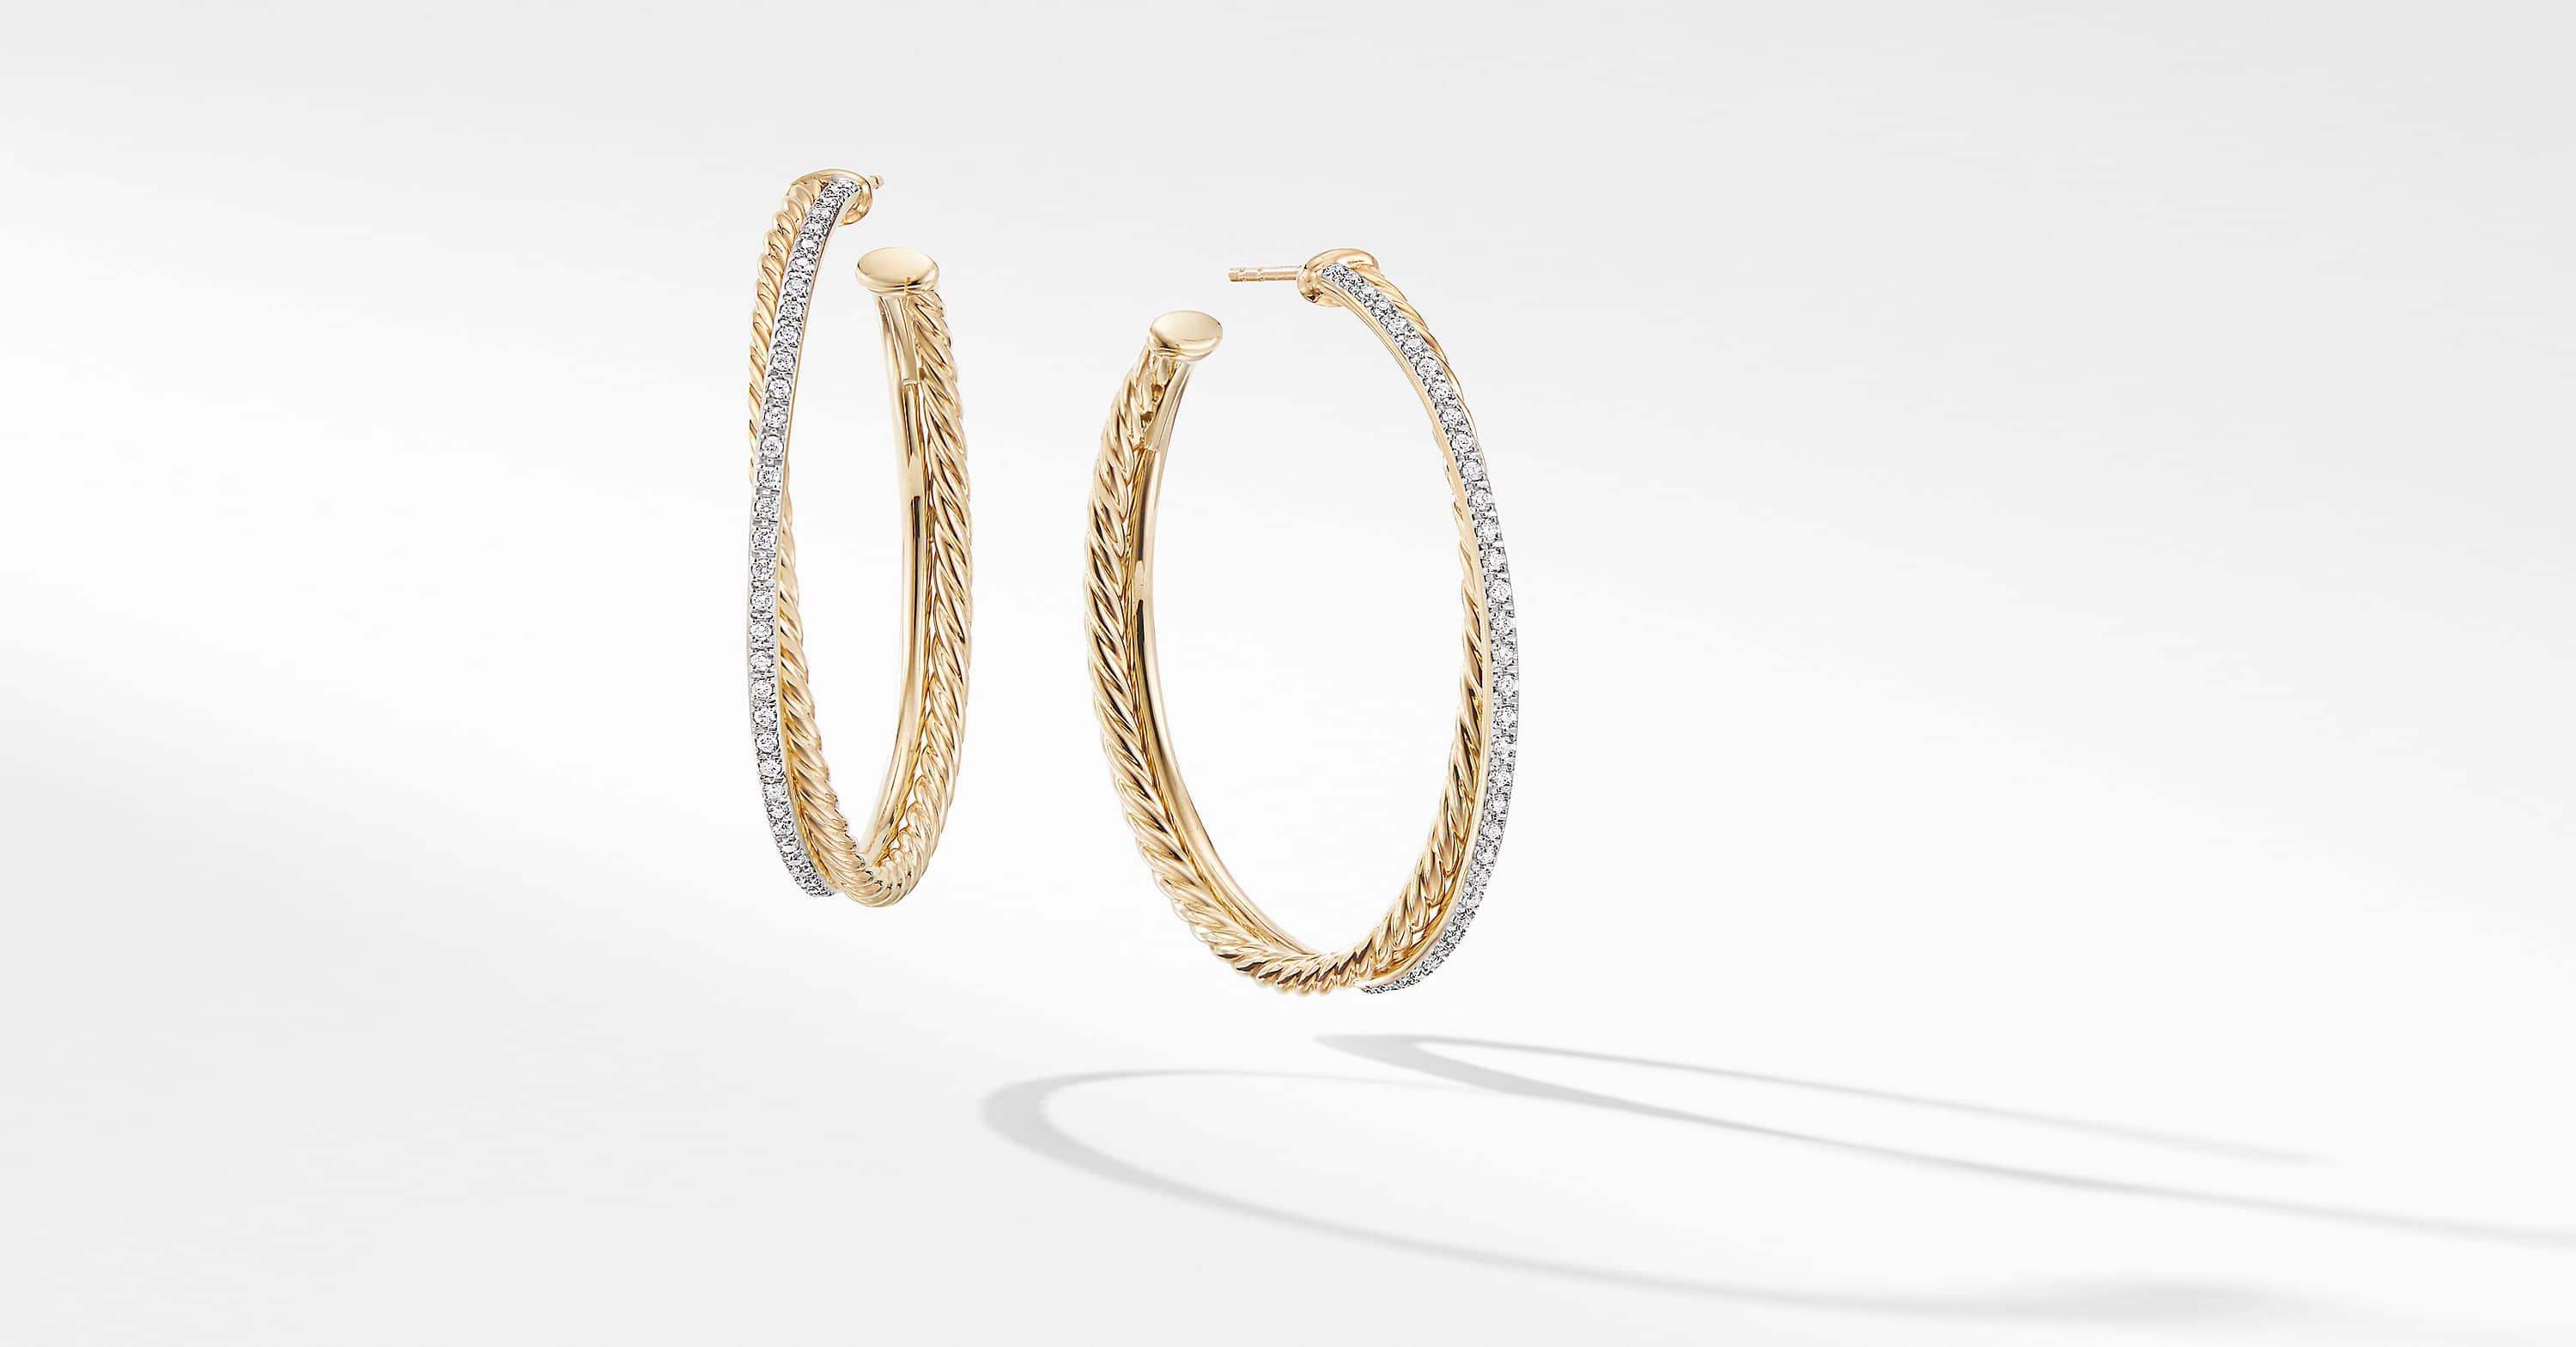 The Crossover Collection XL Hoop Earrings in 18K Yellow Gold with Diamonds